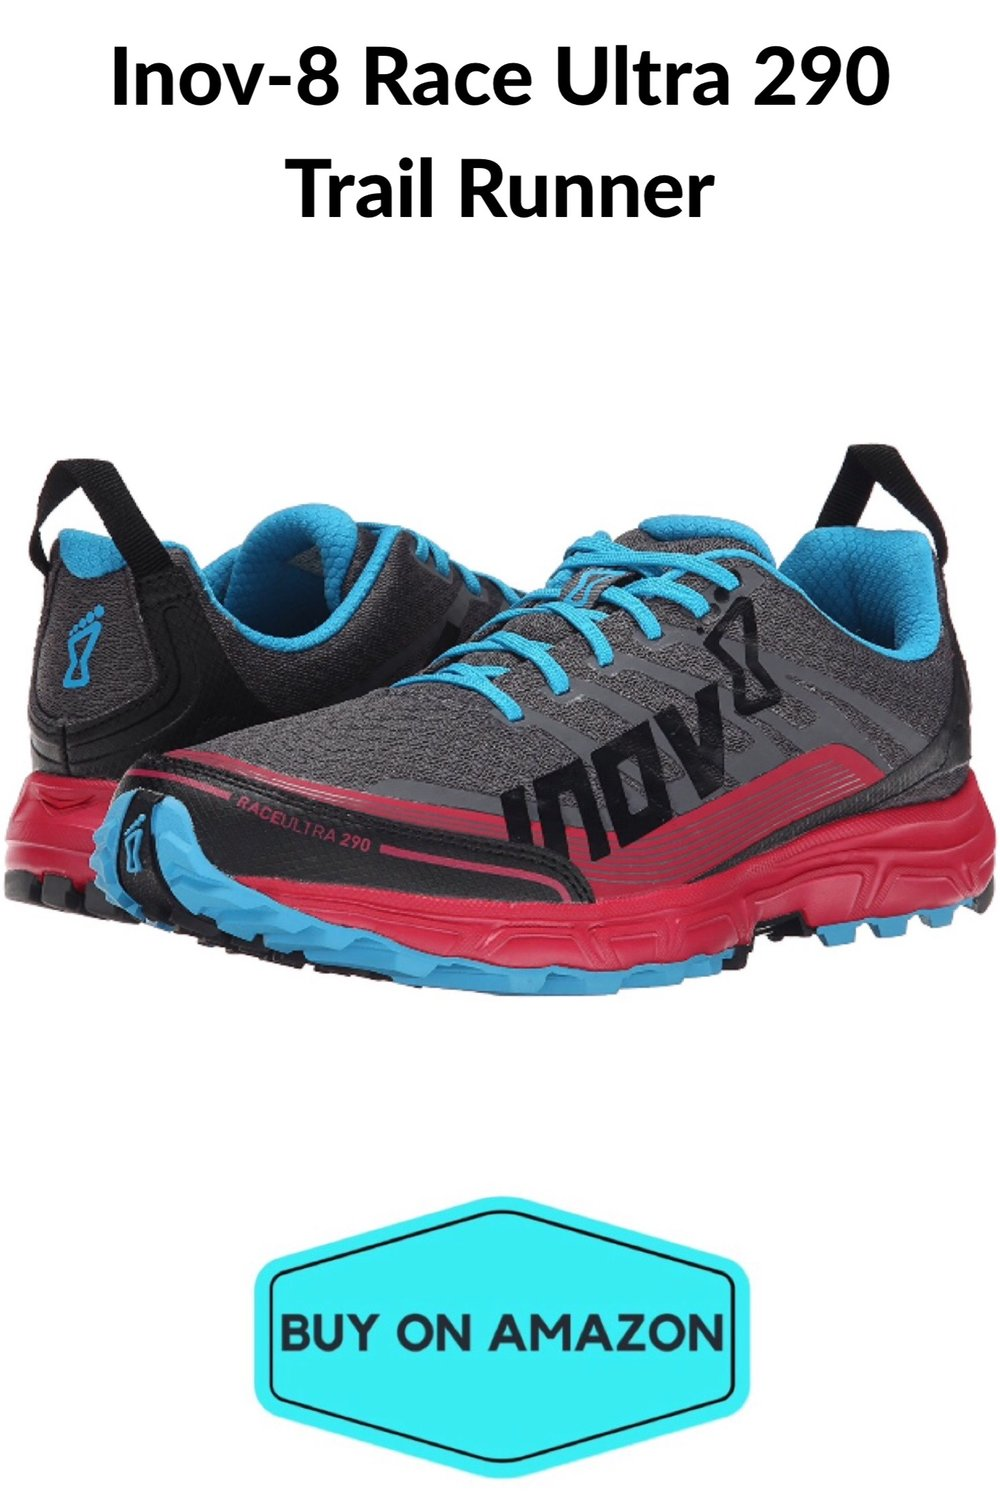 Inov-8 Race Ultra 290 Women's Trail Runner